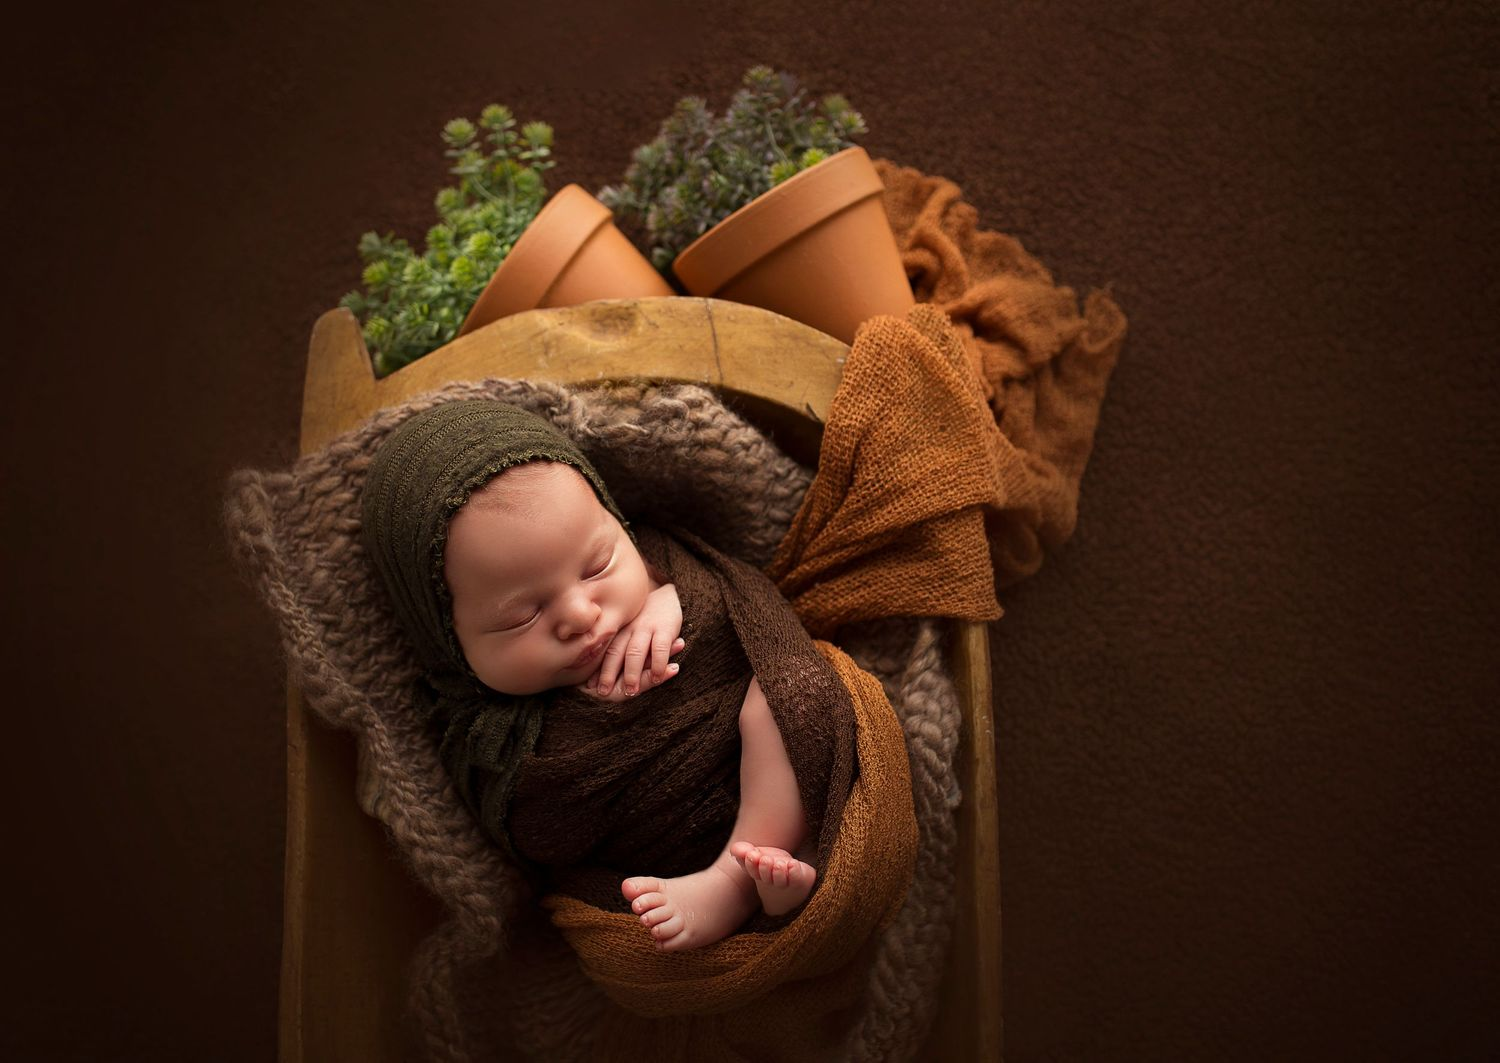 natural light photography in studio baby boy in bowl with plants